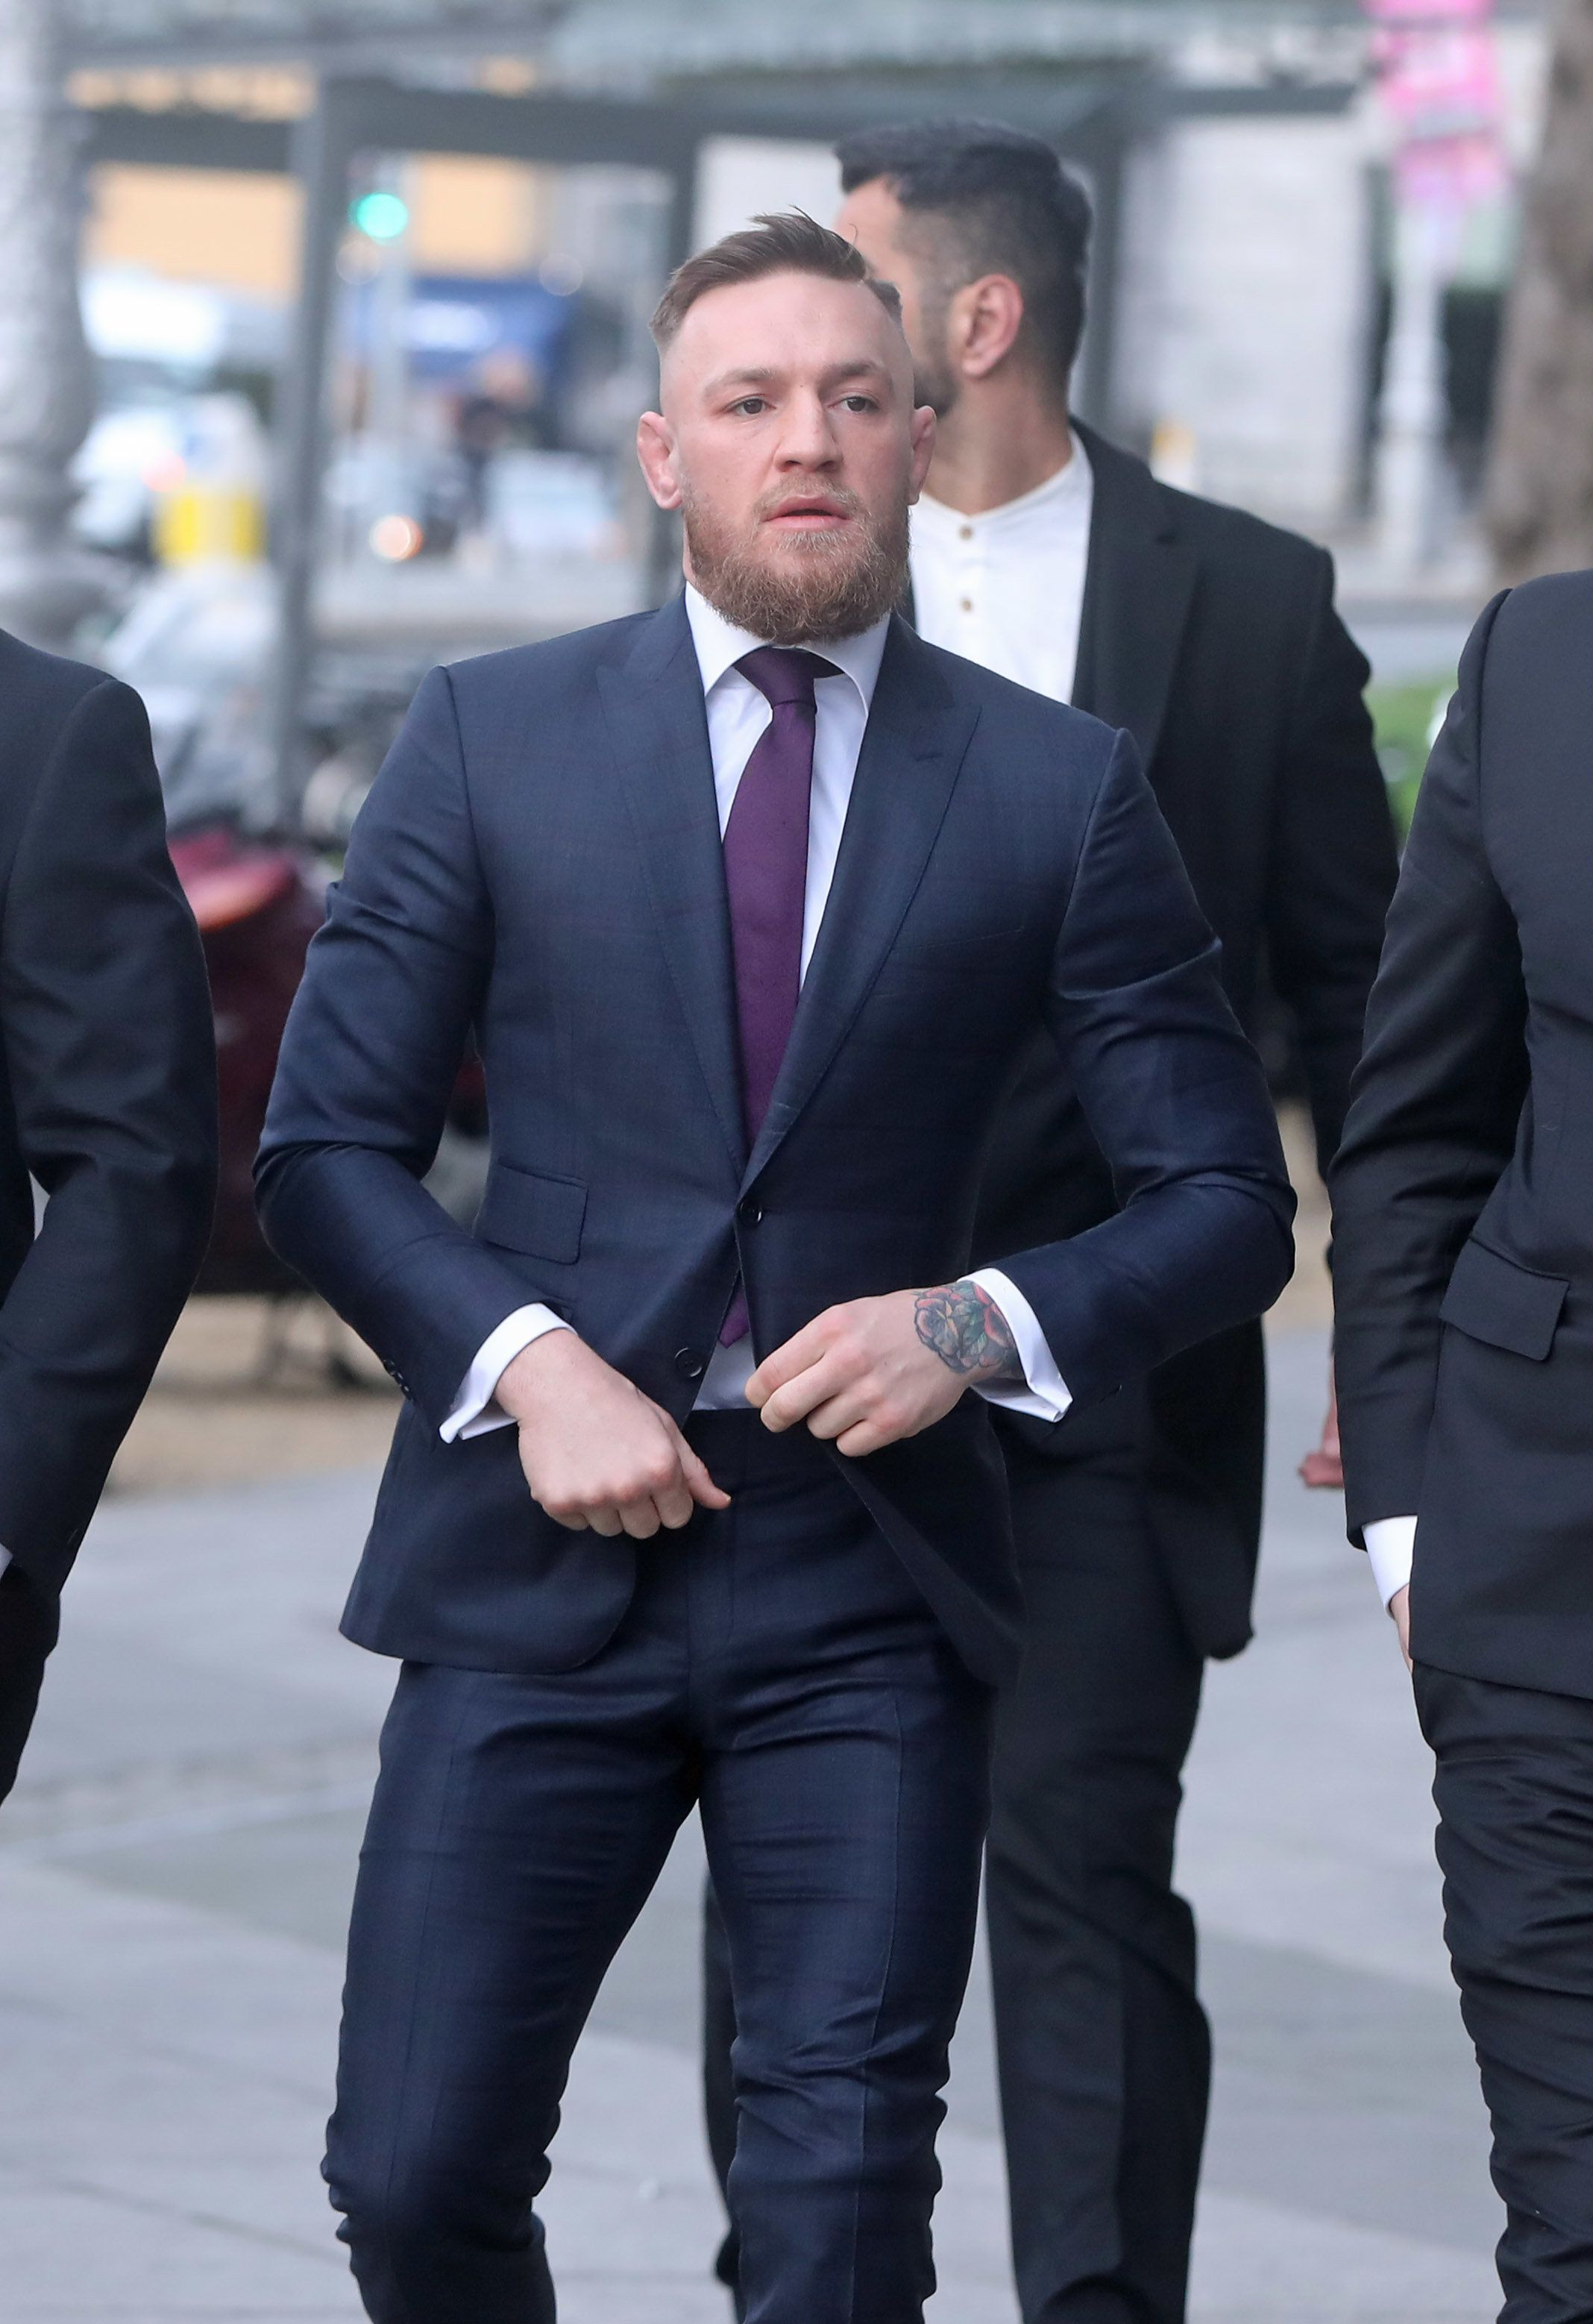 Conor McGregor arrives at Dublin District Court where he is charged with motoring offences. (Photo by Niall Carson/PA Images via Getty Images)